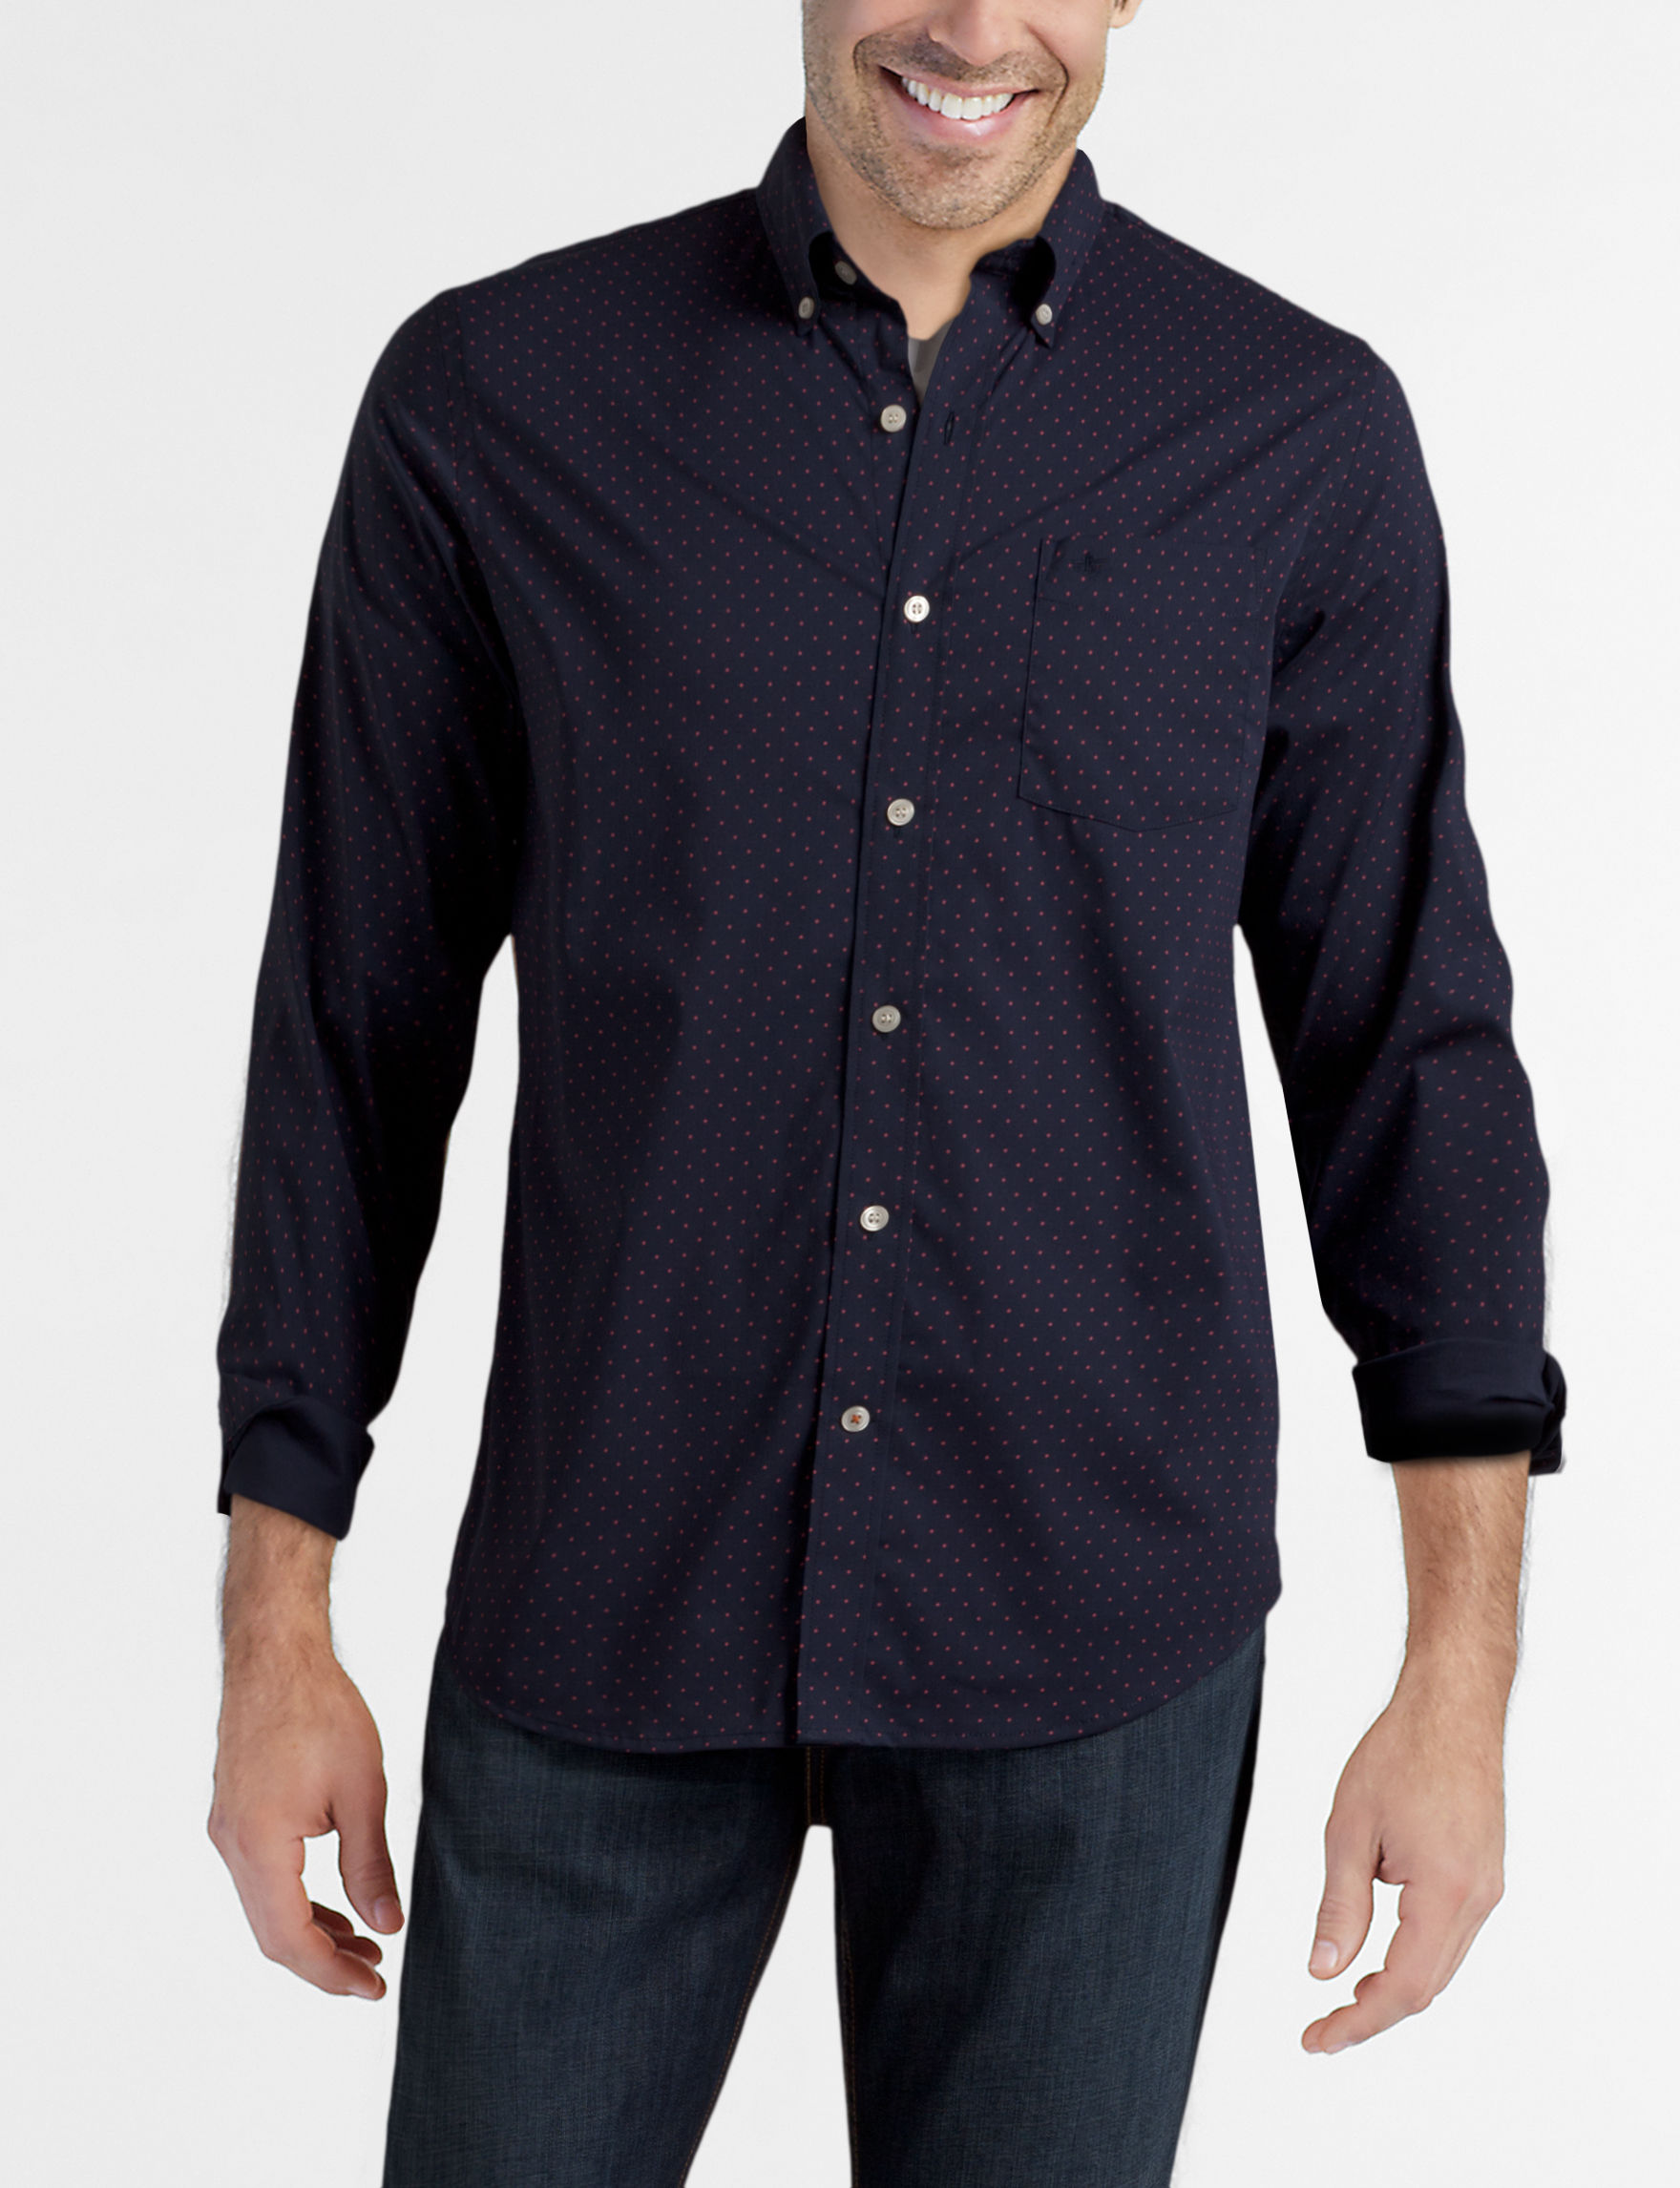 Dockers Navy / Pink Casual Button Down Shirts